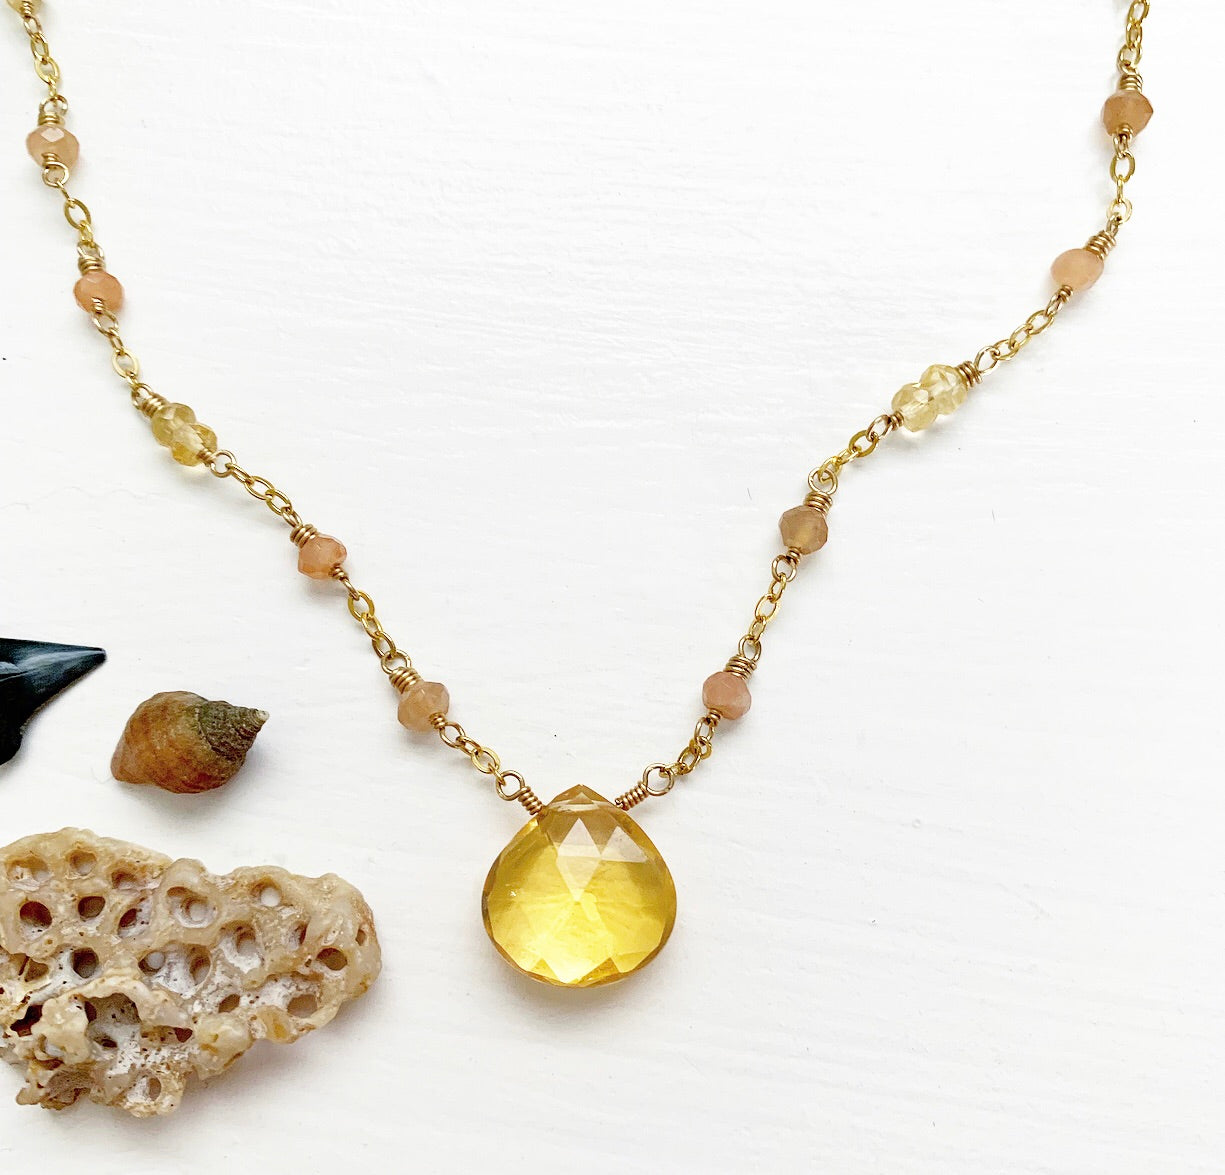 834-Gemstone Layering Necklace